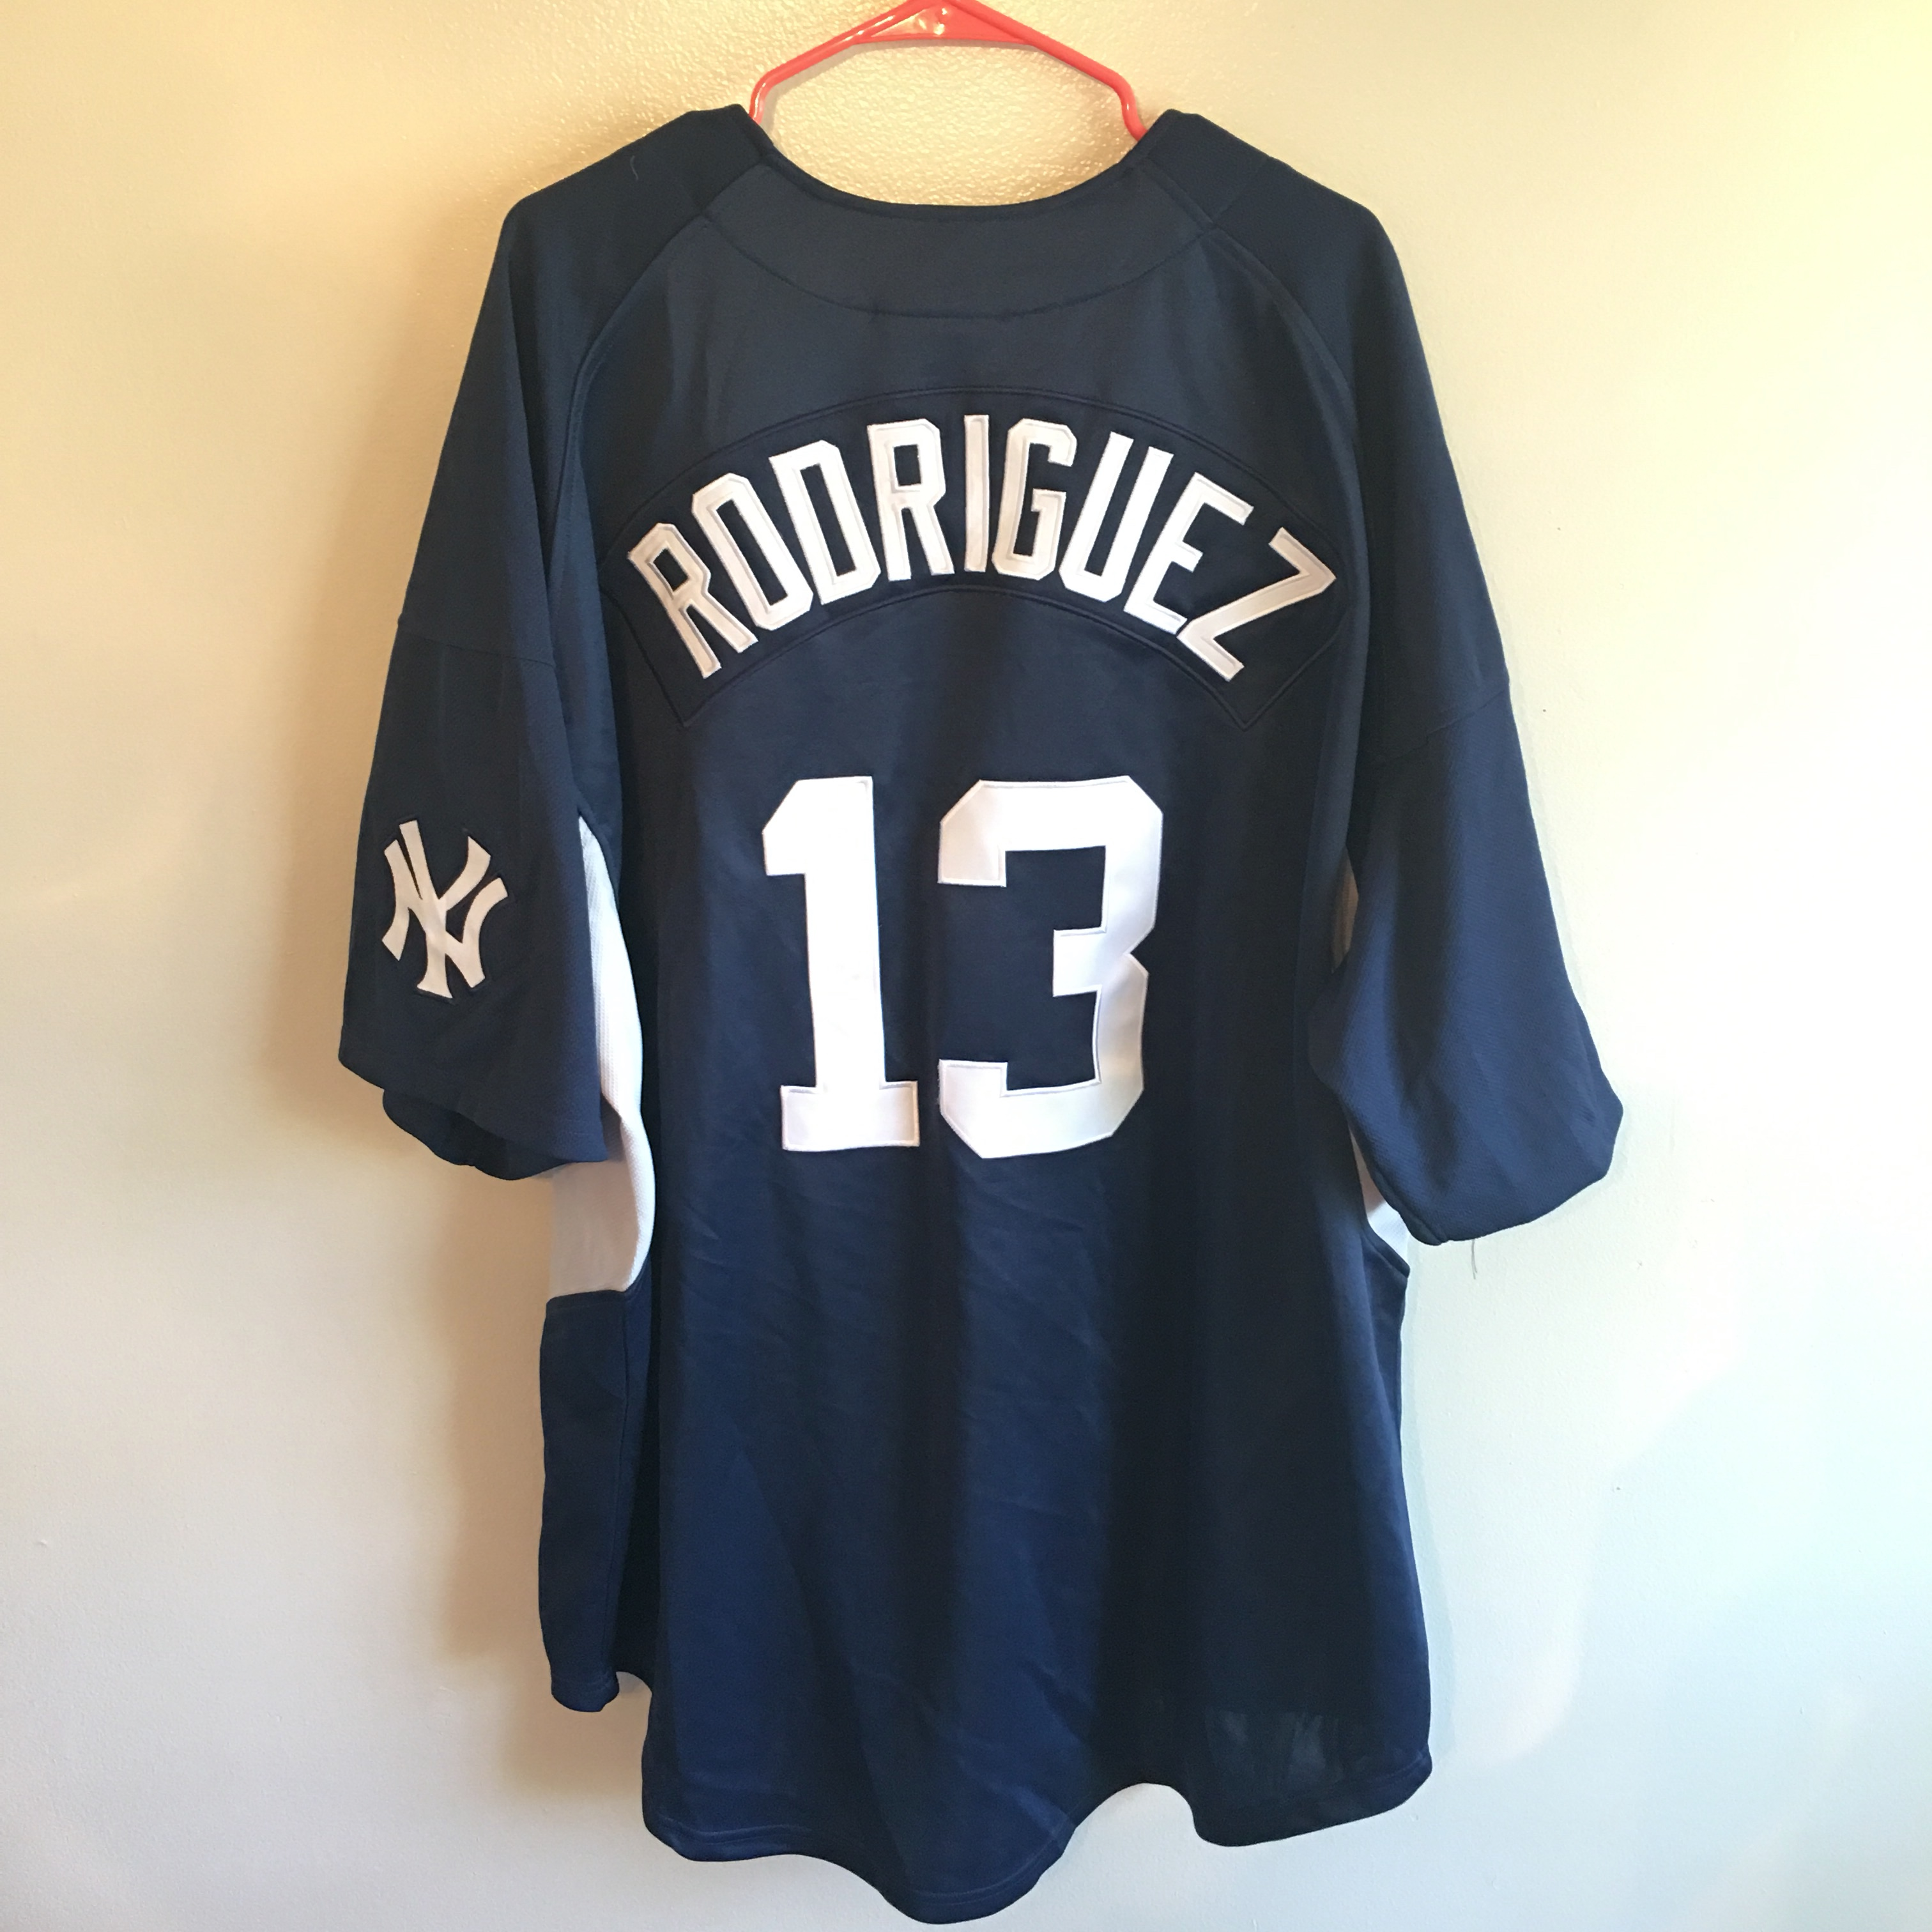 newest 1a5a4 ed2be For sale is an Alex Rodriguez New York Yankees 3rd... - Depop